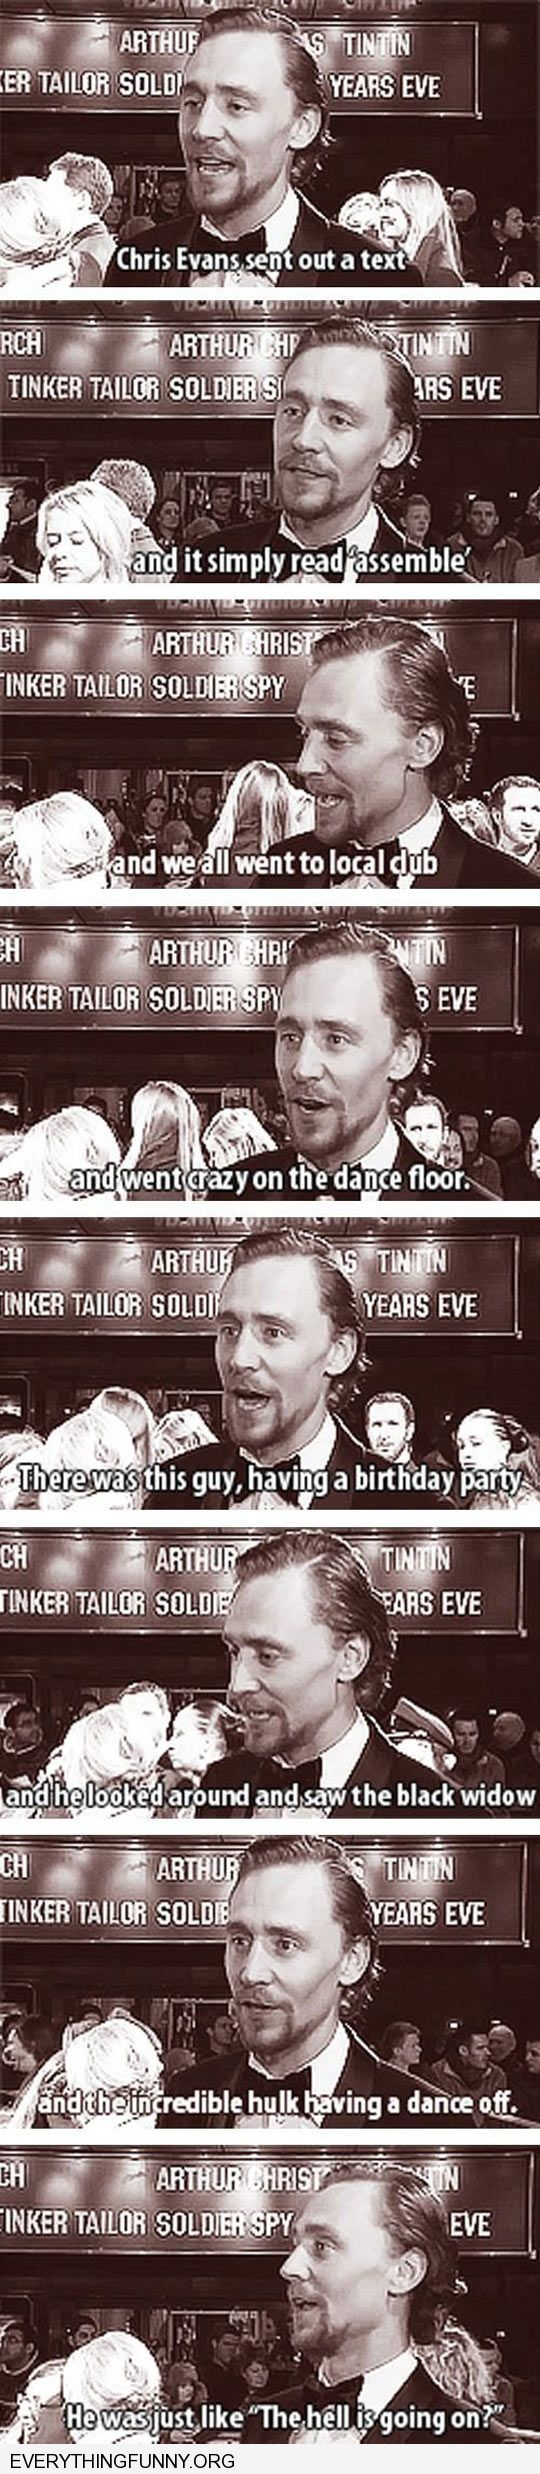 funny crew of the avengers assemble in real life at a club groom was like what is going on